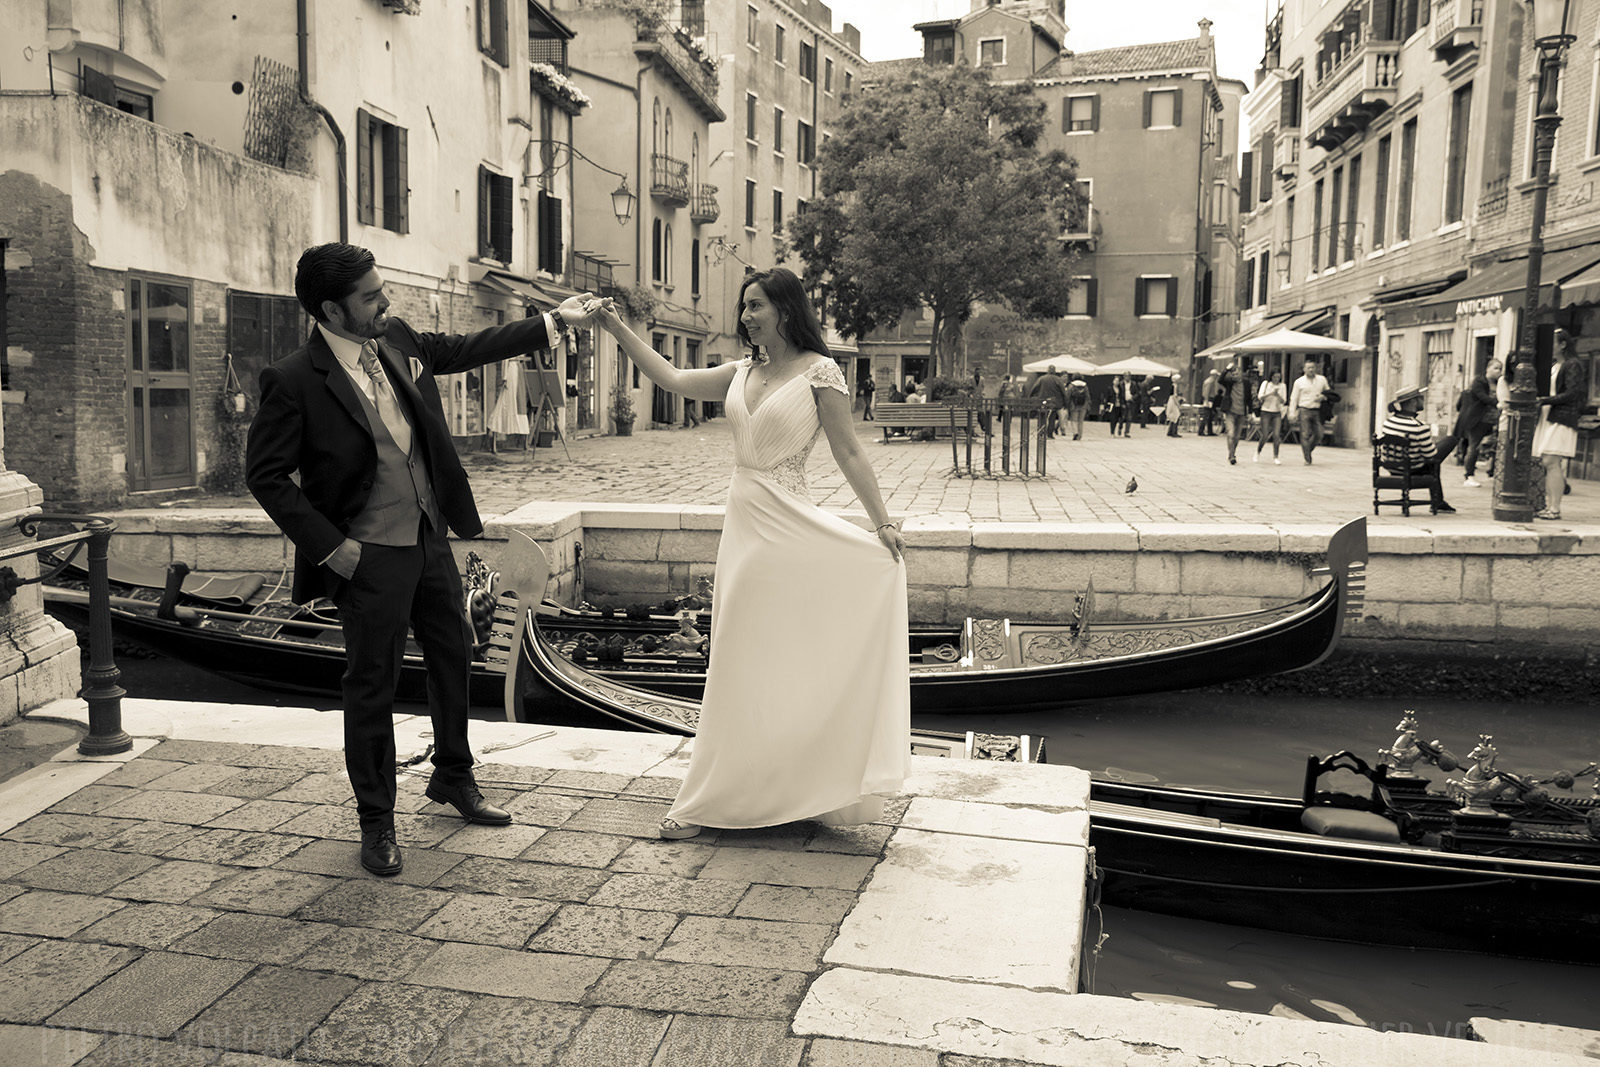 wedding-honeymoon-photographer-venice-italy-20170509_02